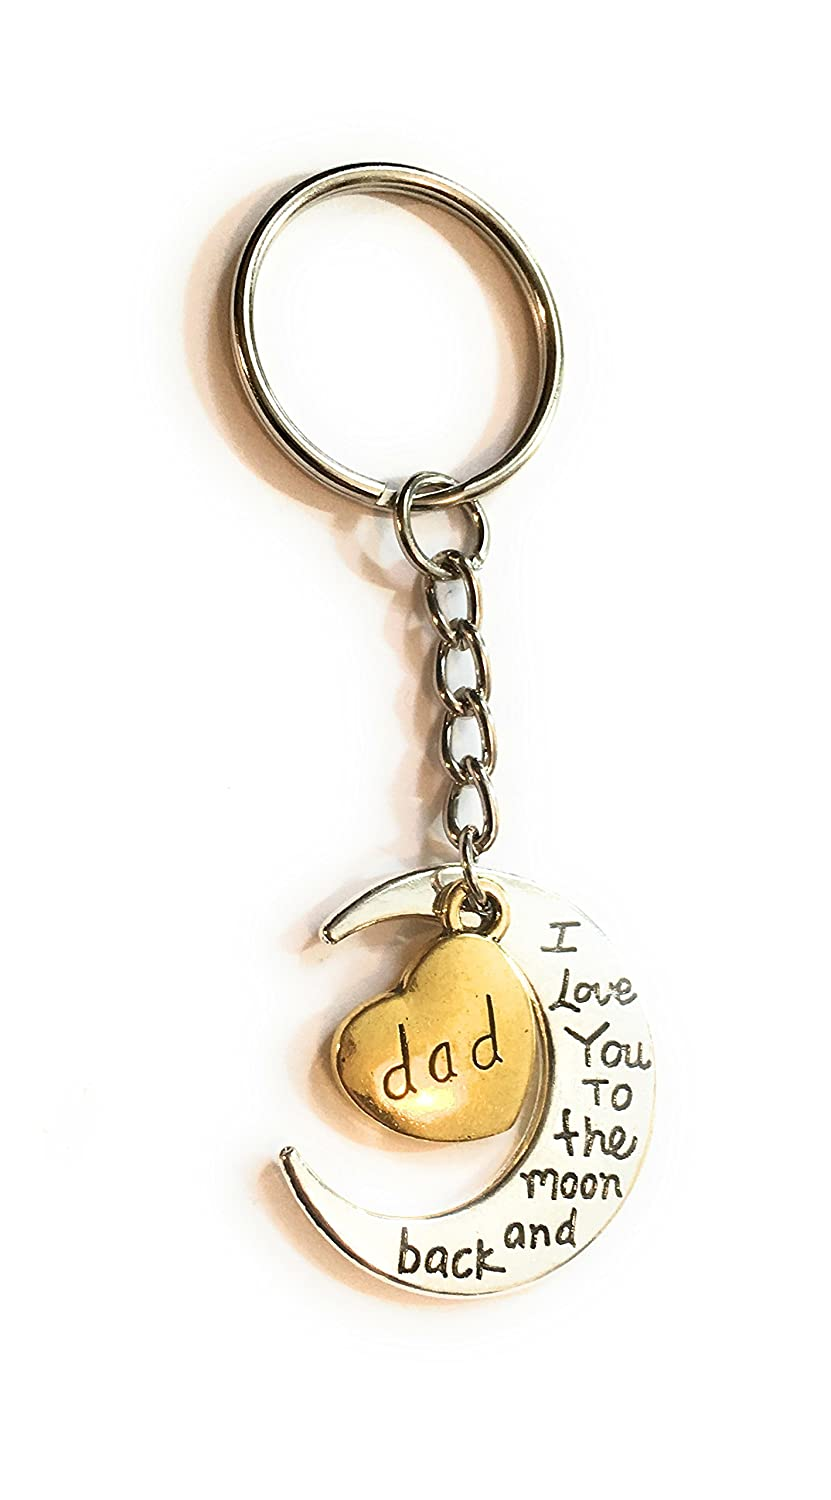 FizzyButton Gifts Dad I love you to the moon and back gold and silver tone keyring or bag tag